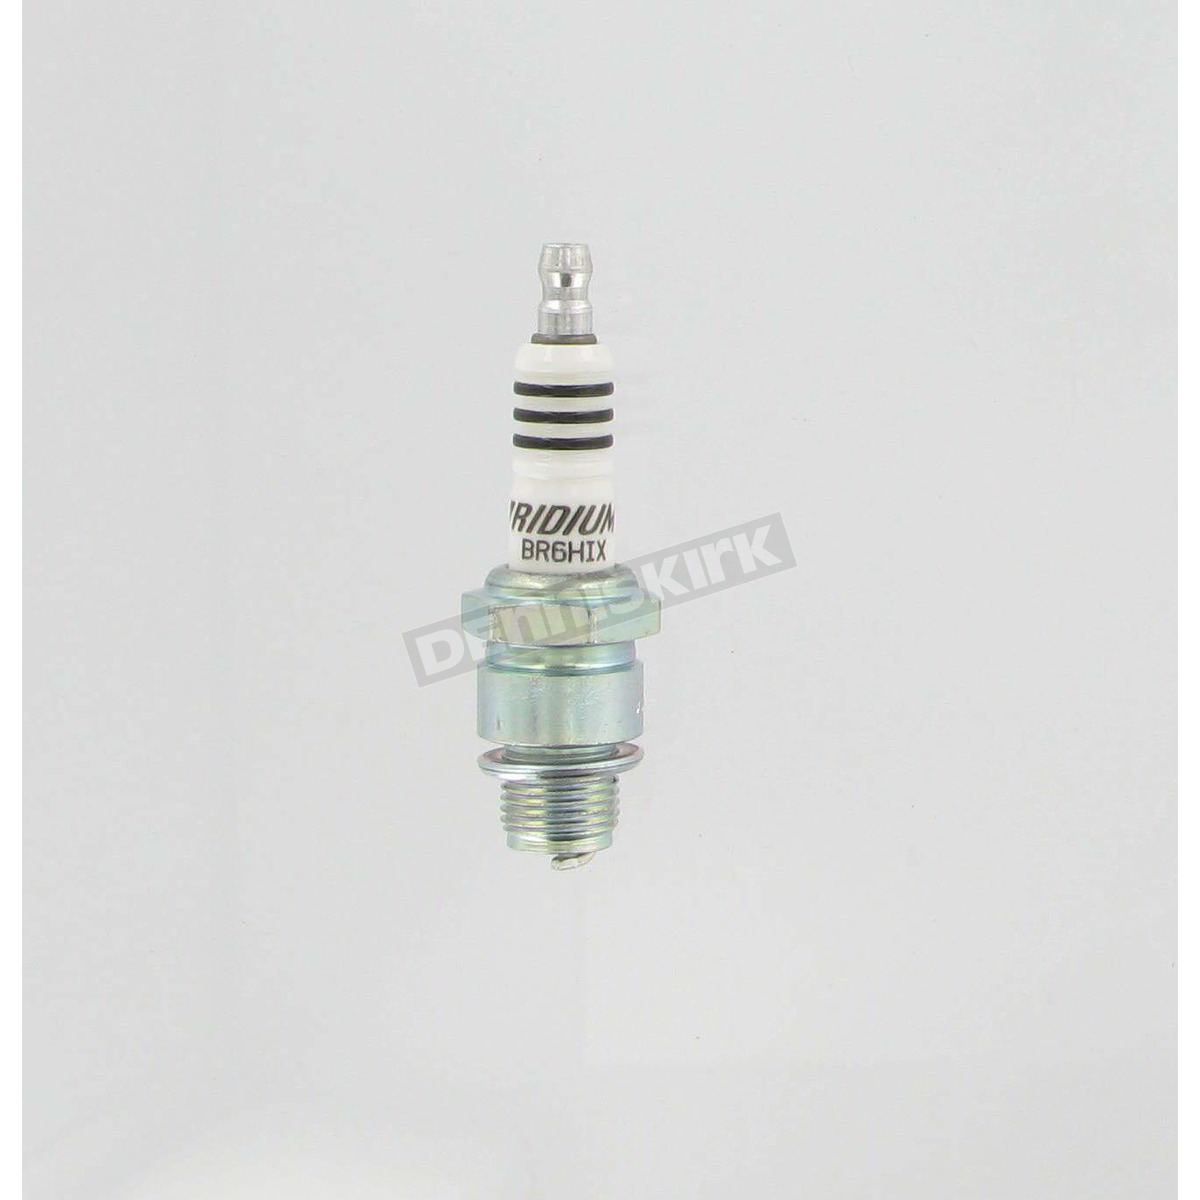 ngk spark plugs wires with Spark Plug Pbr8hix on Dorman Procucts Quality Reliability Affordable Prices furthermore Mopar Spark Plugs together with 346 1x Ixuh22 likewise Chassis Har425 moreover Nissan Frontier Spark Plug Location.